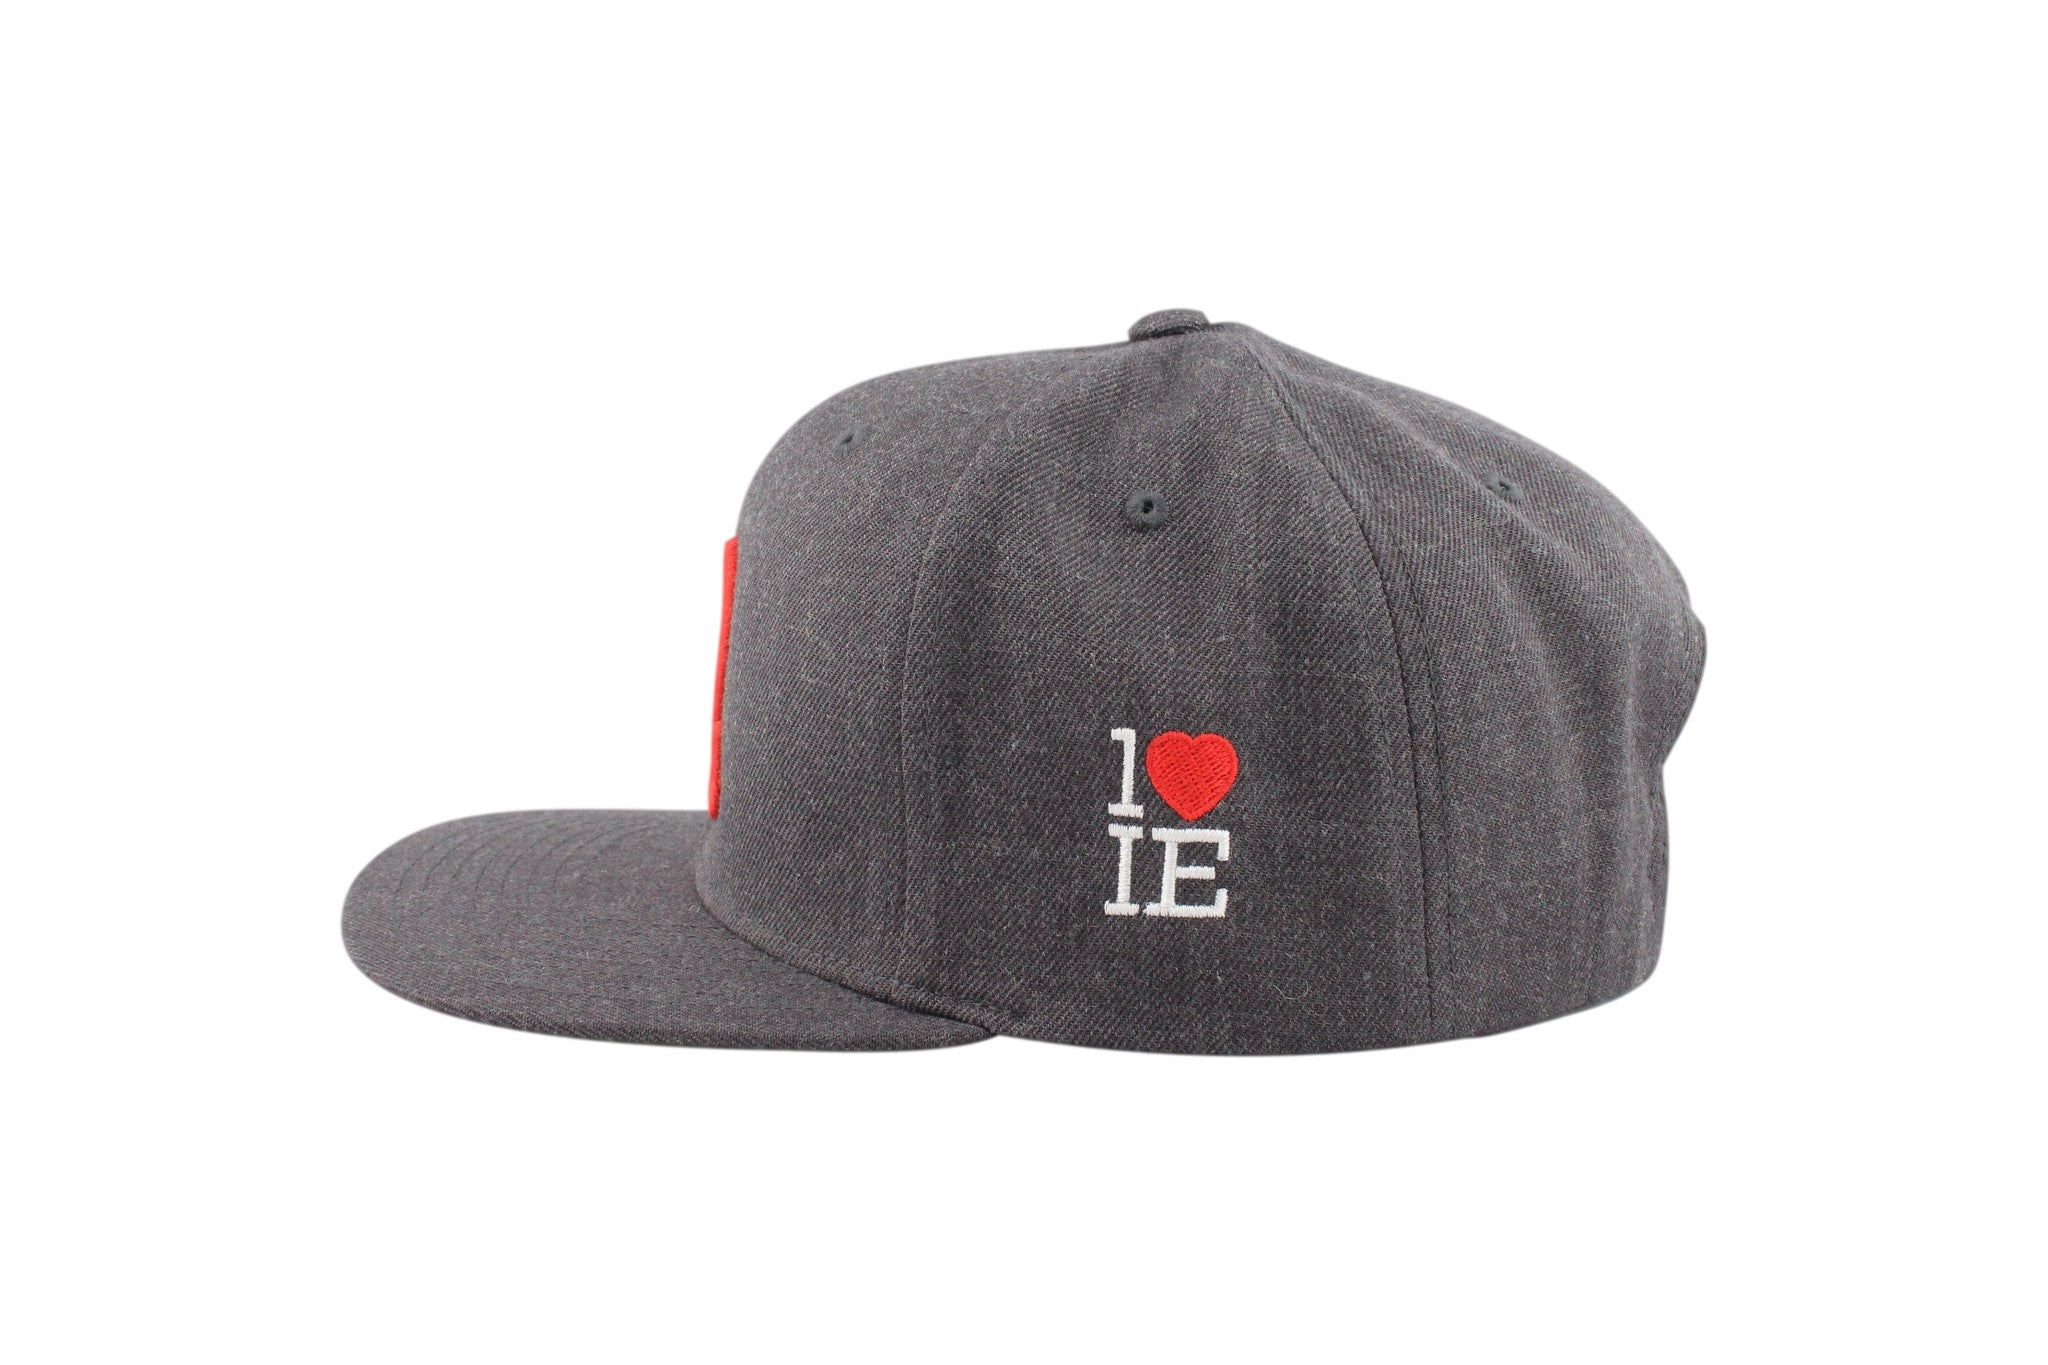 1LoveIE Snapback (Charcoal /Red)